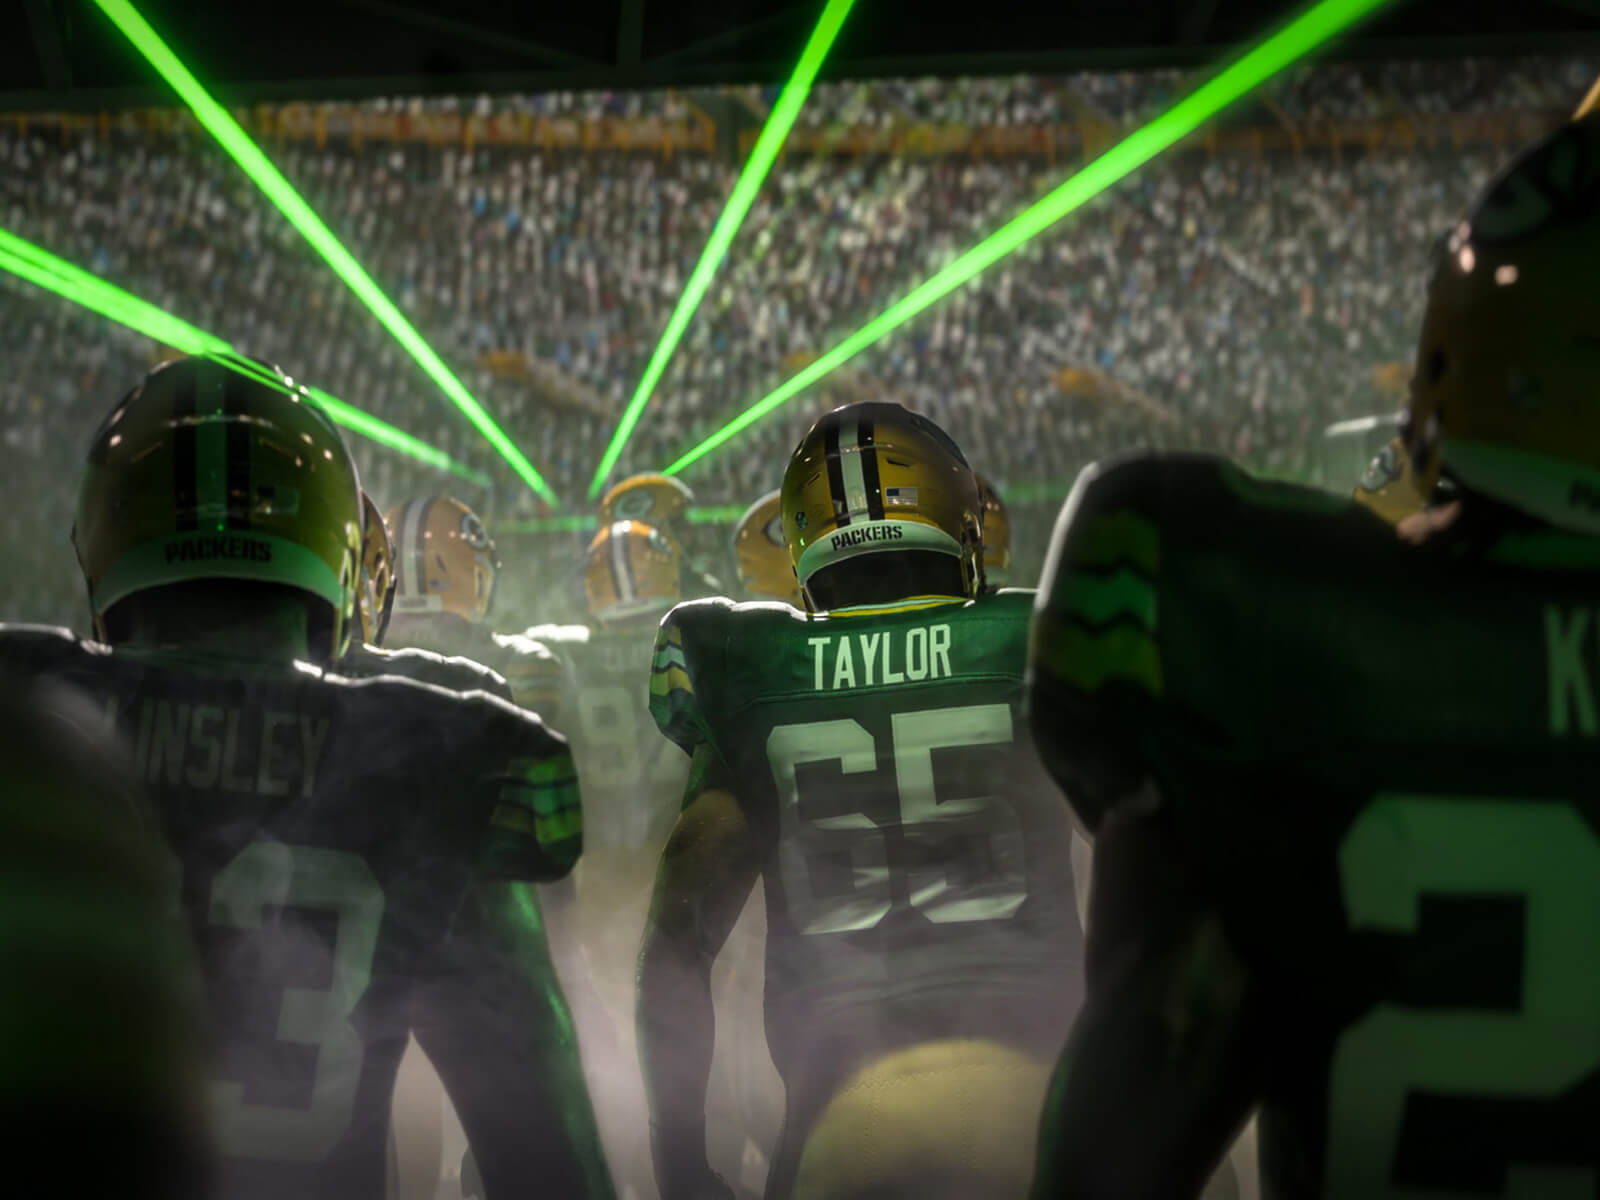 A screenshot of the Green Bay Packers exiting their locker room with lasers overhead from Madden NFL 21.